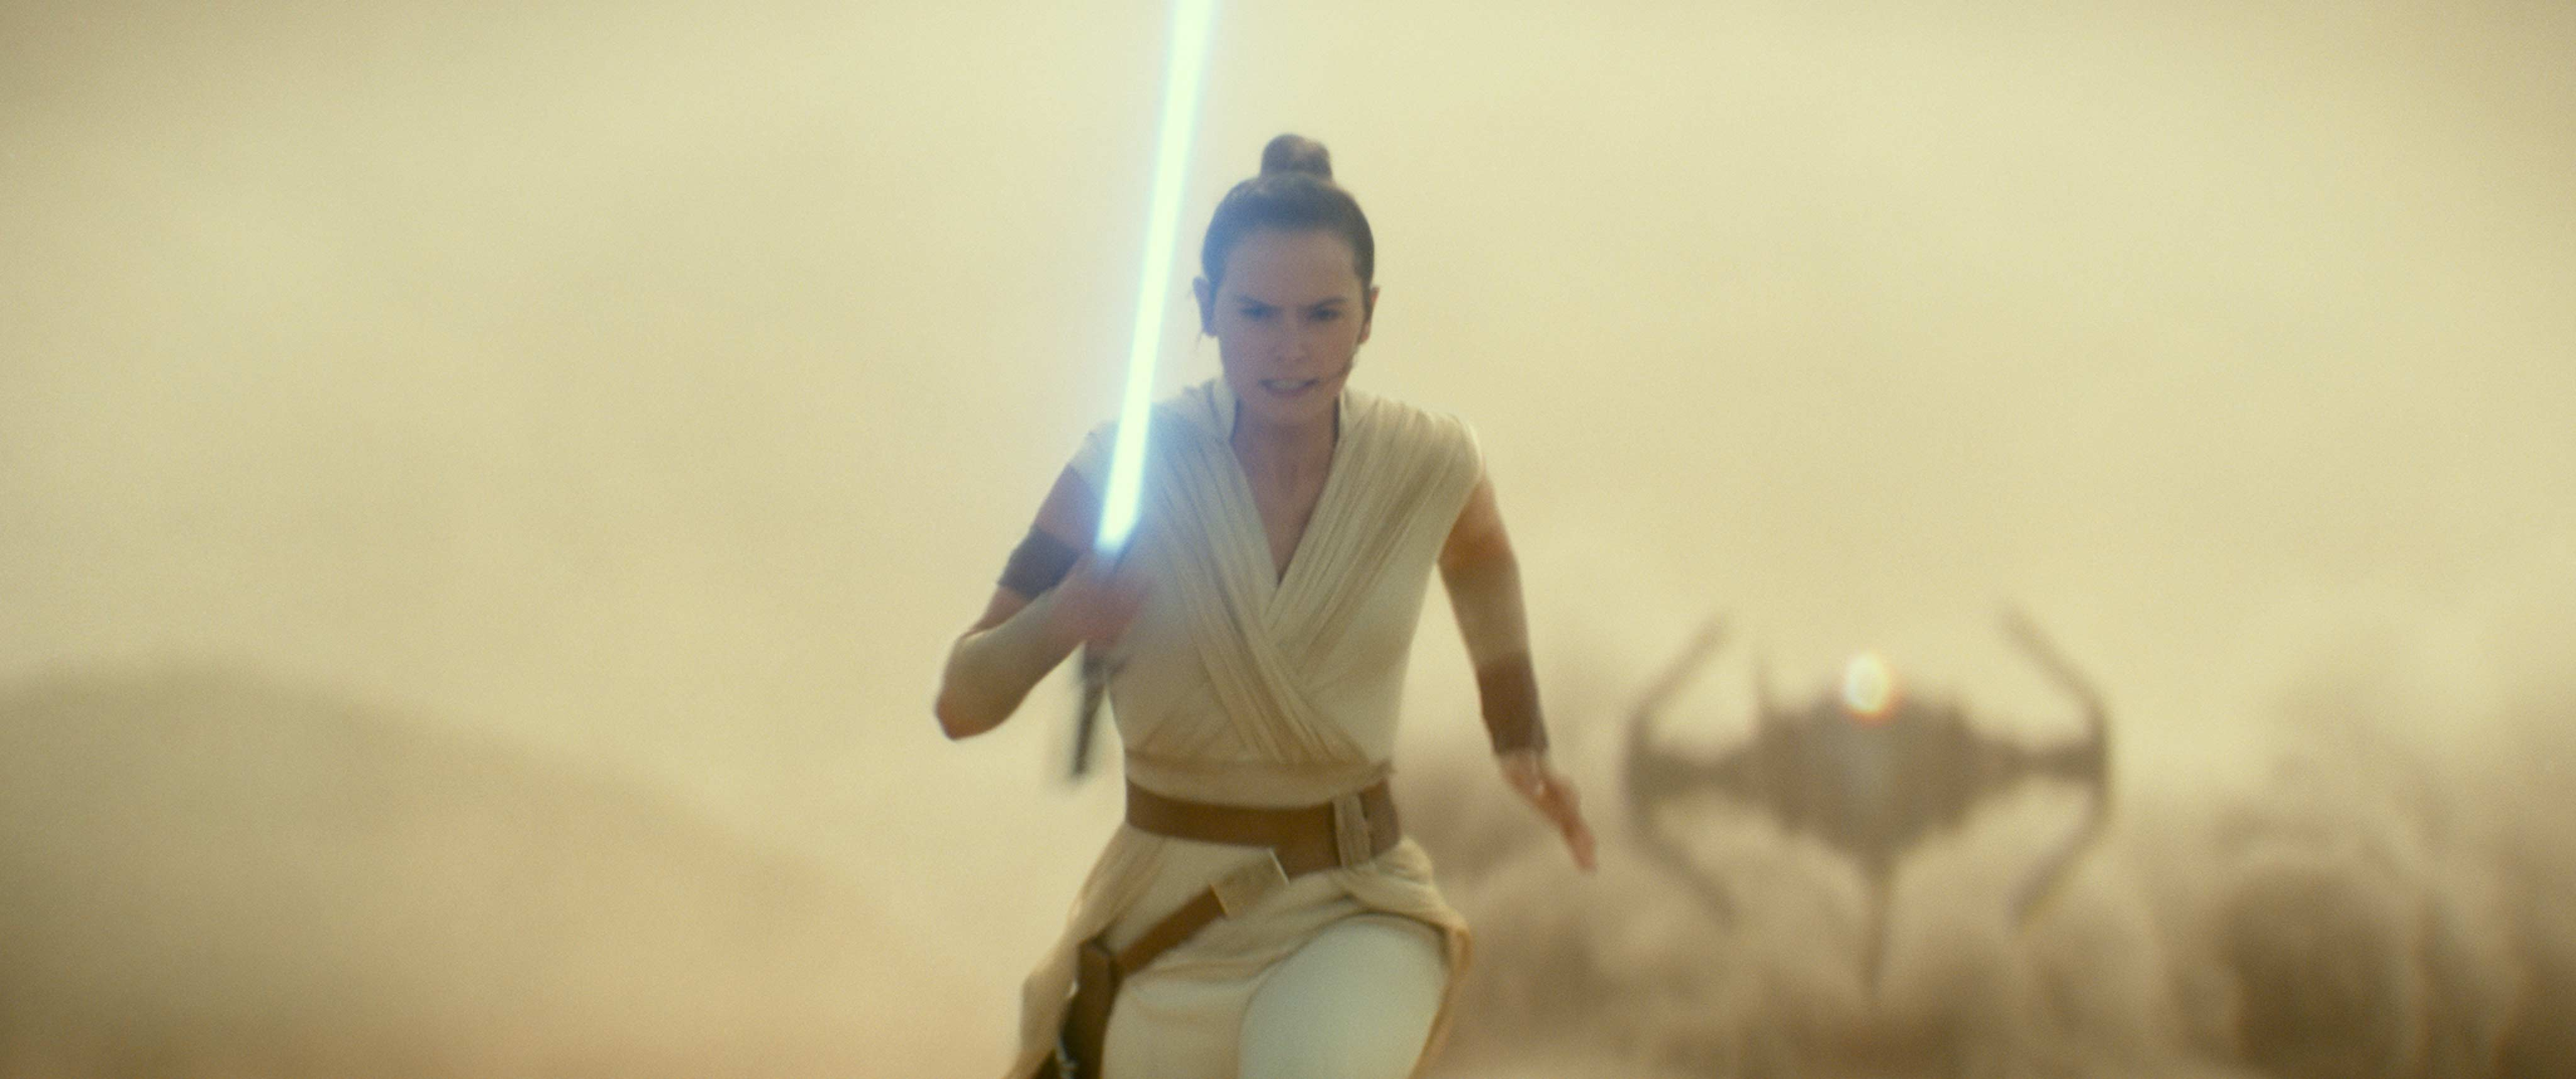 Star Wars The Rise Of Skywalker Wallpapers Wallpaper Cave